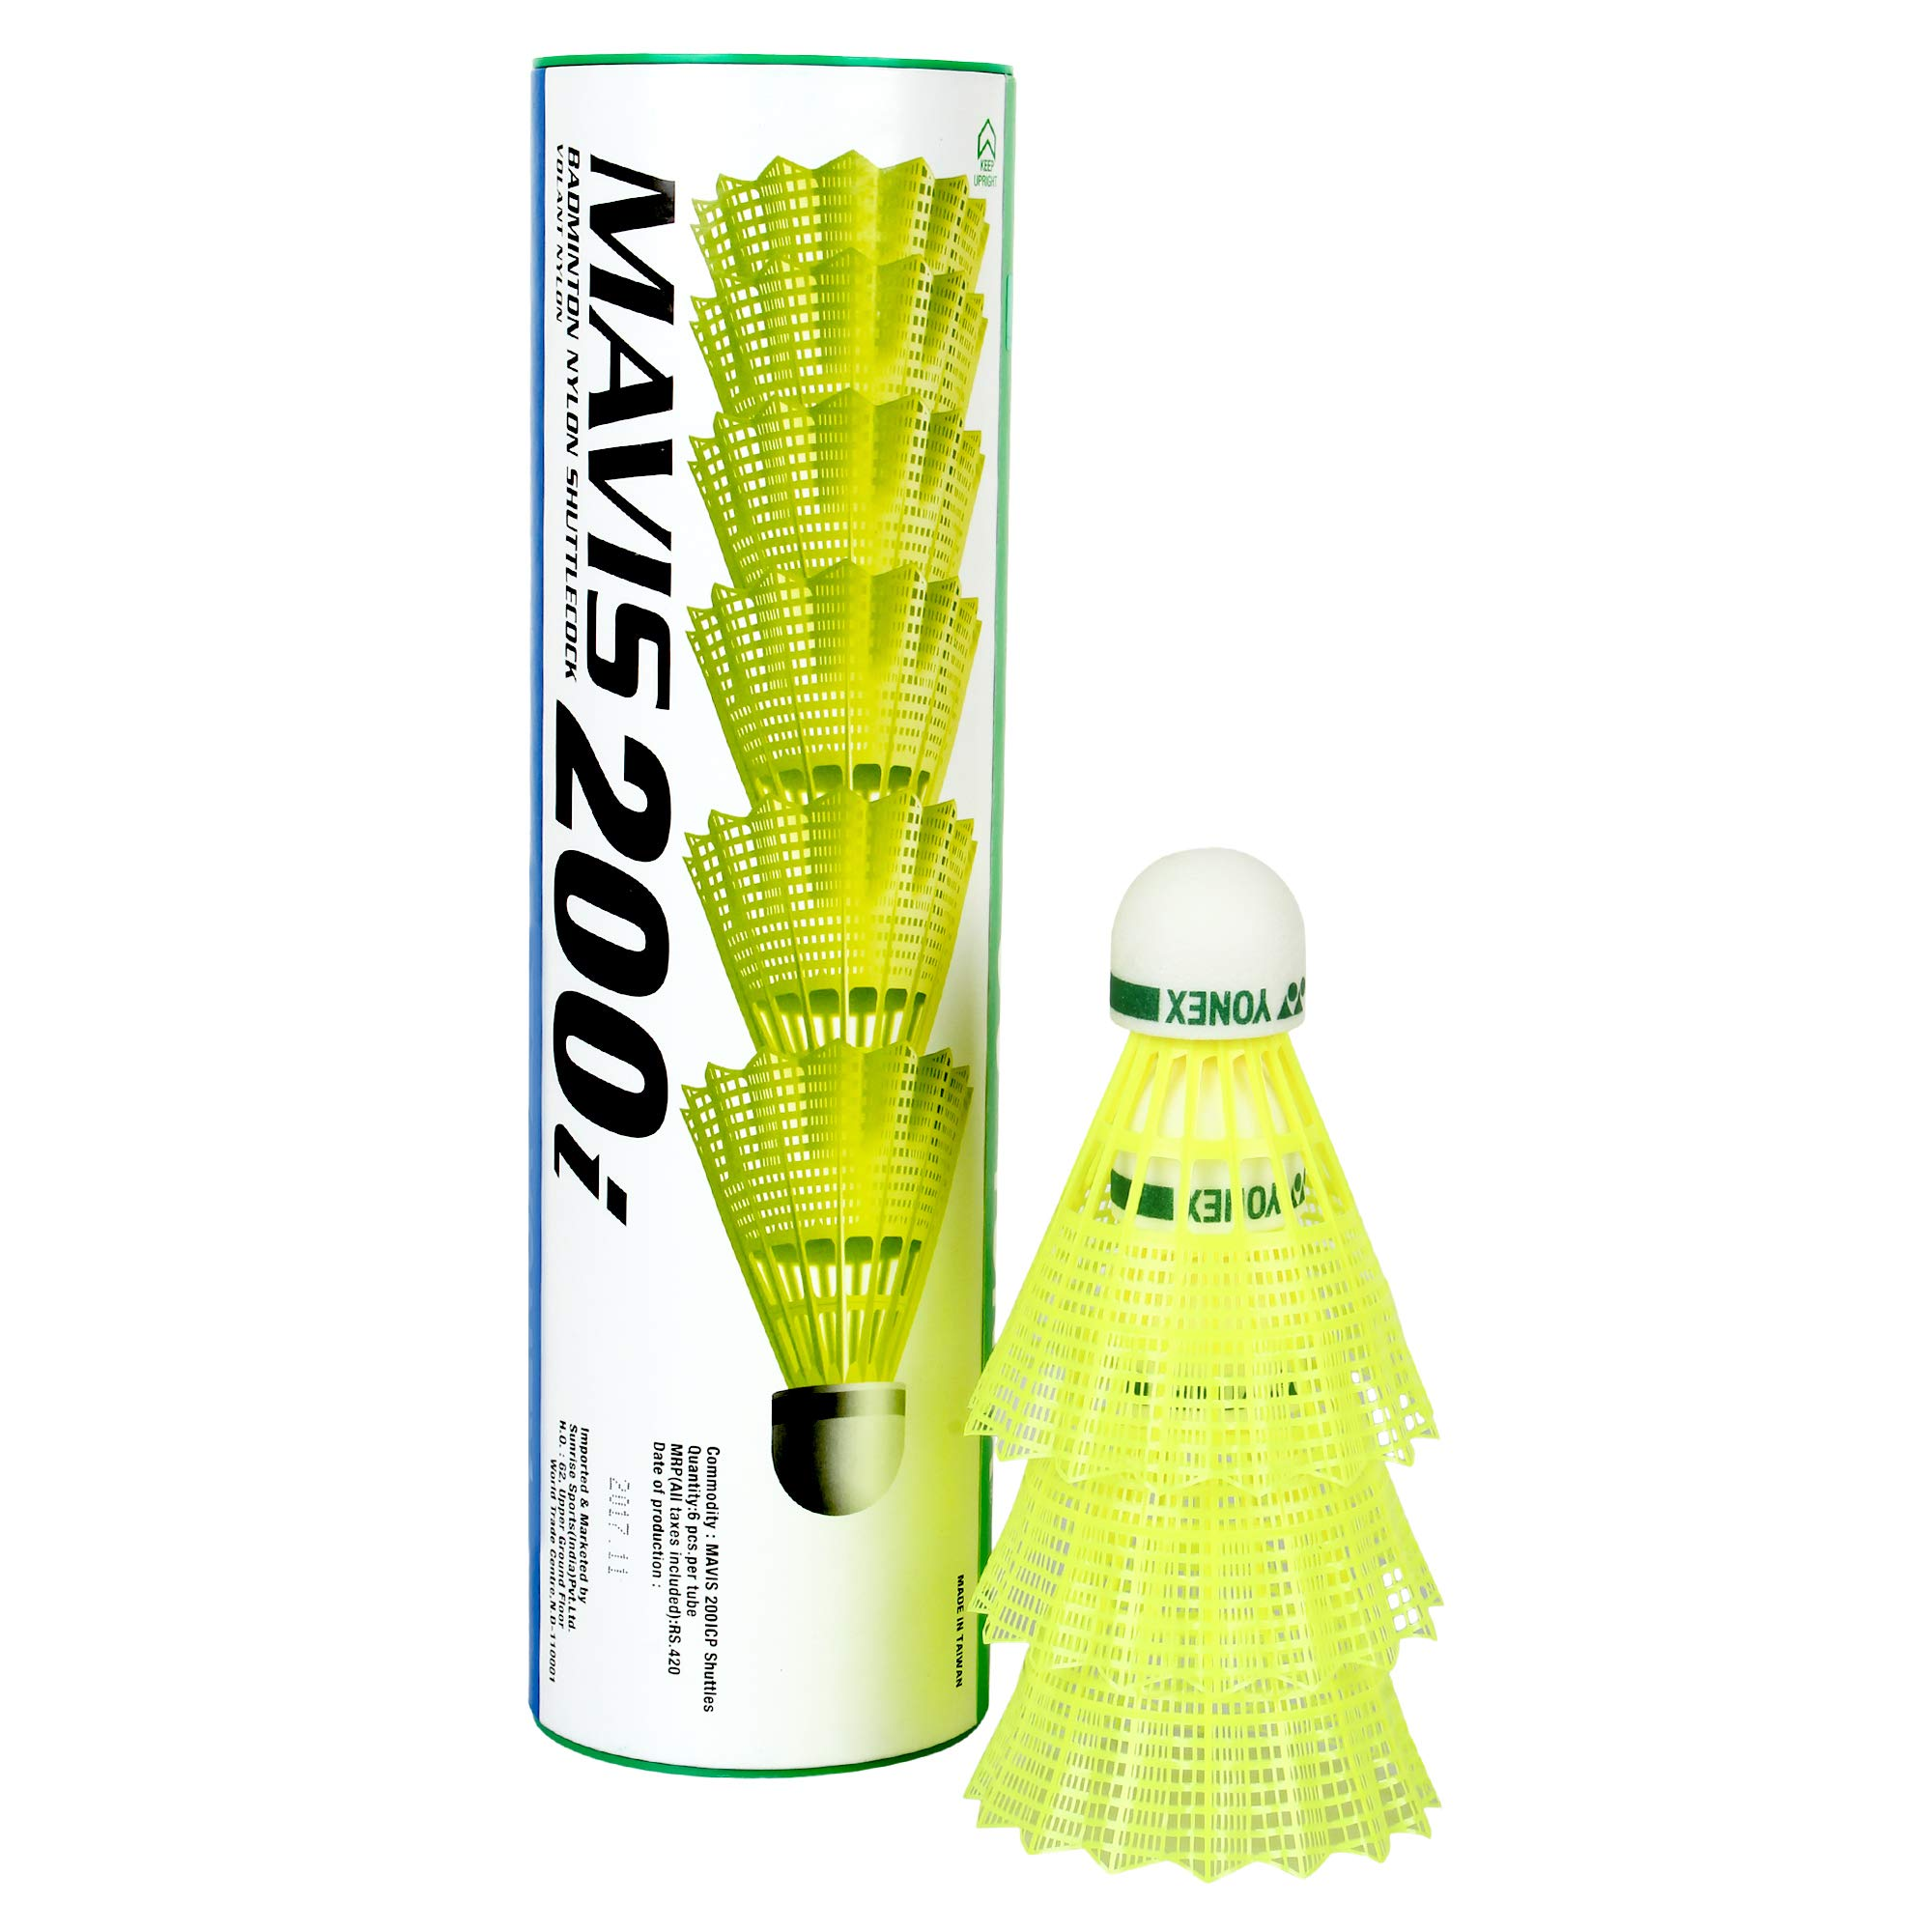 Yonex Mavis 200i Nylon Shuttle Cock, Pack of 6 (Yellow) product image